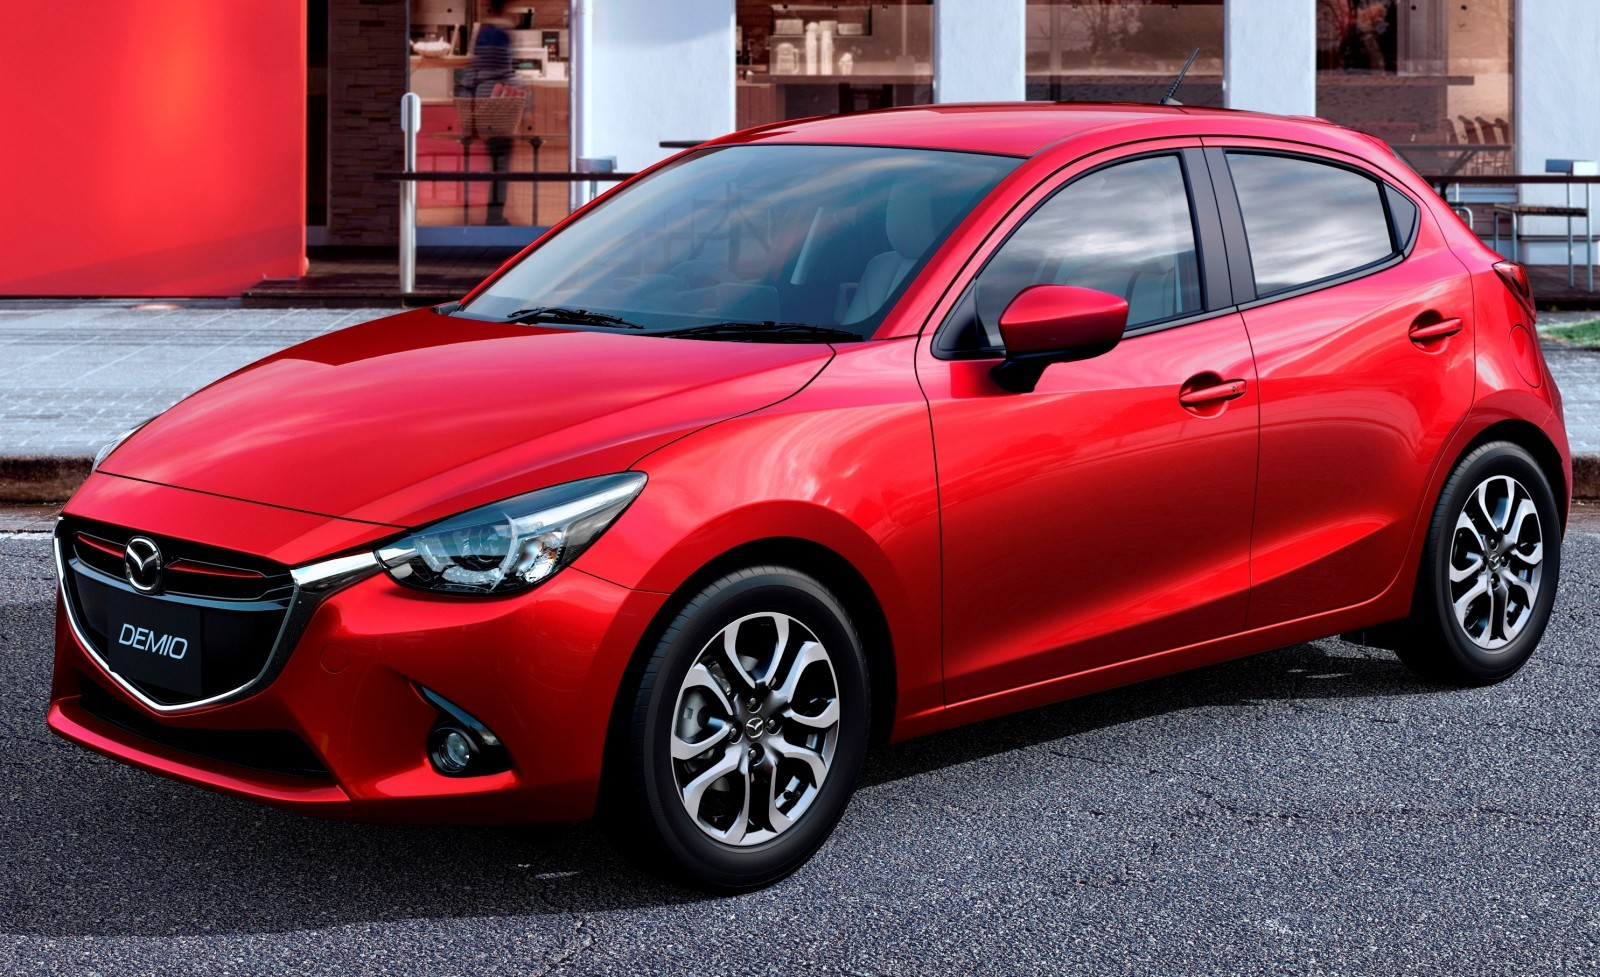 2016 Mazda2 First Photos! Upmarket New Grille and Cabin Highlight Changes 4